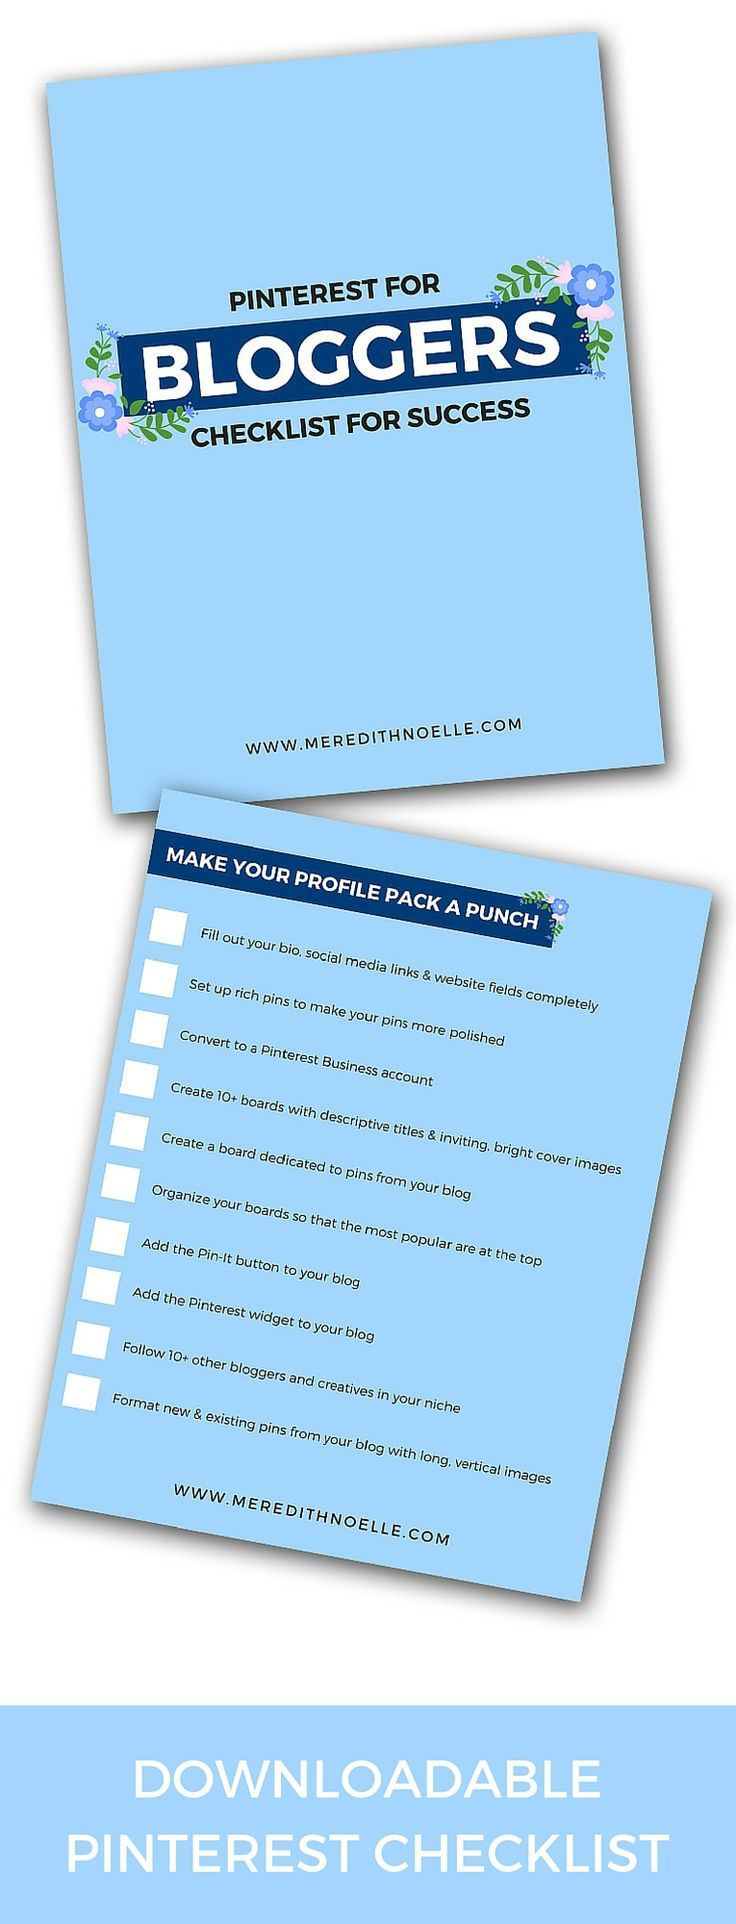 Want to rock Pinterest? Download the Pinterest for Success checklist!